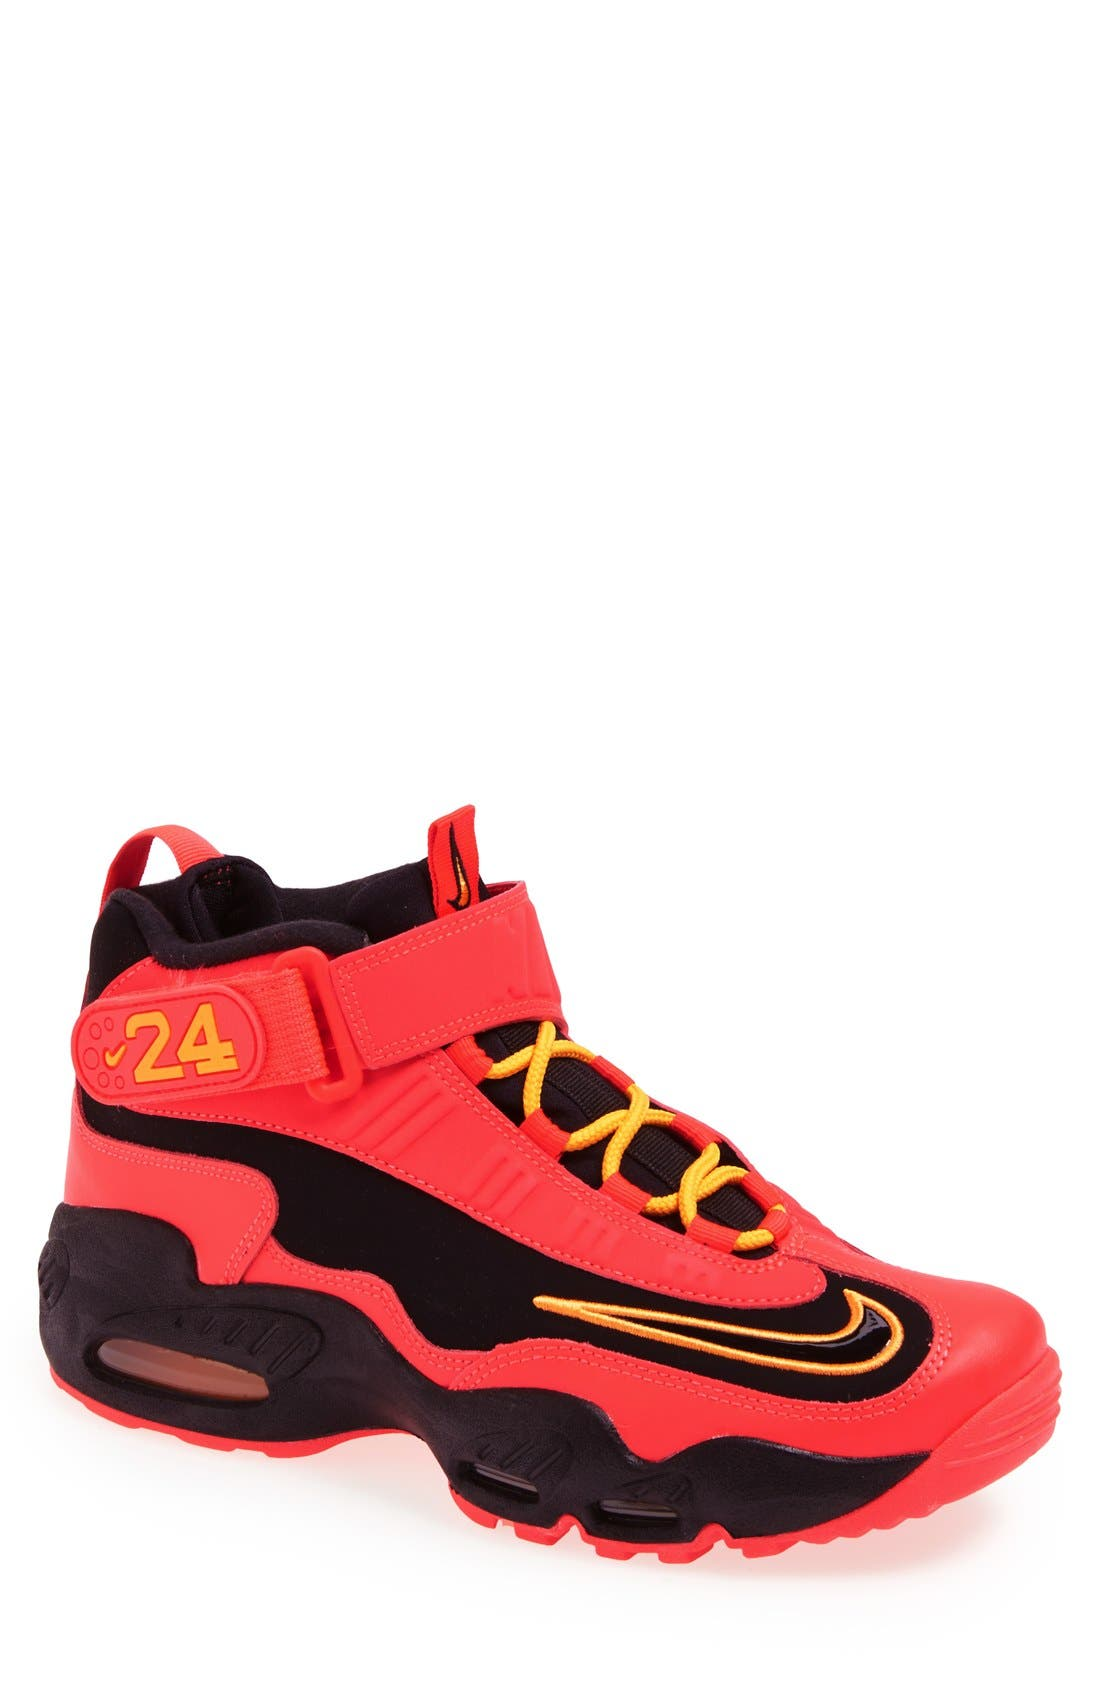 Alternate Image 1 Selected - Nike 'Air Griffey Max 1' Sneaker (Men)